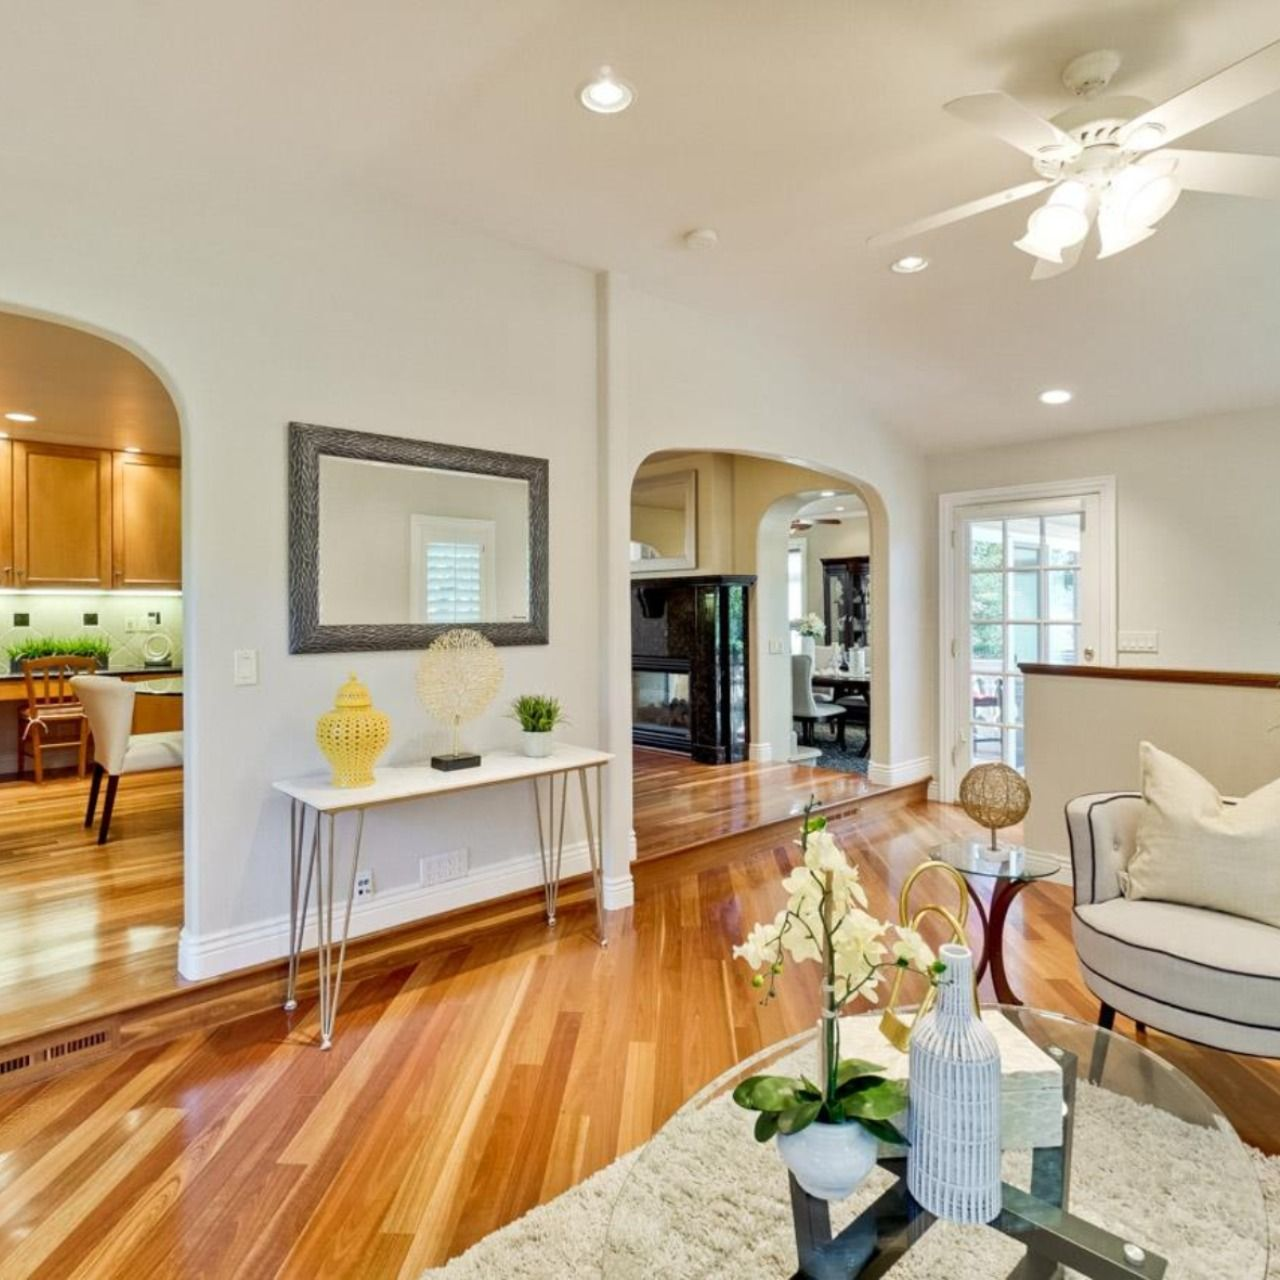 Pin On Cupertino Ca House For Sale